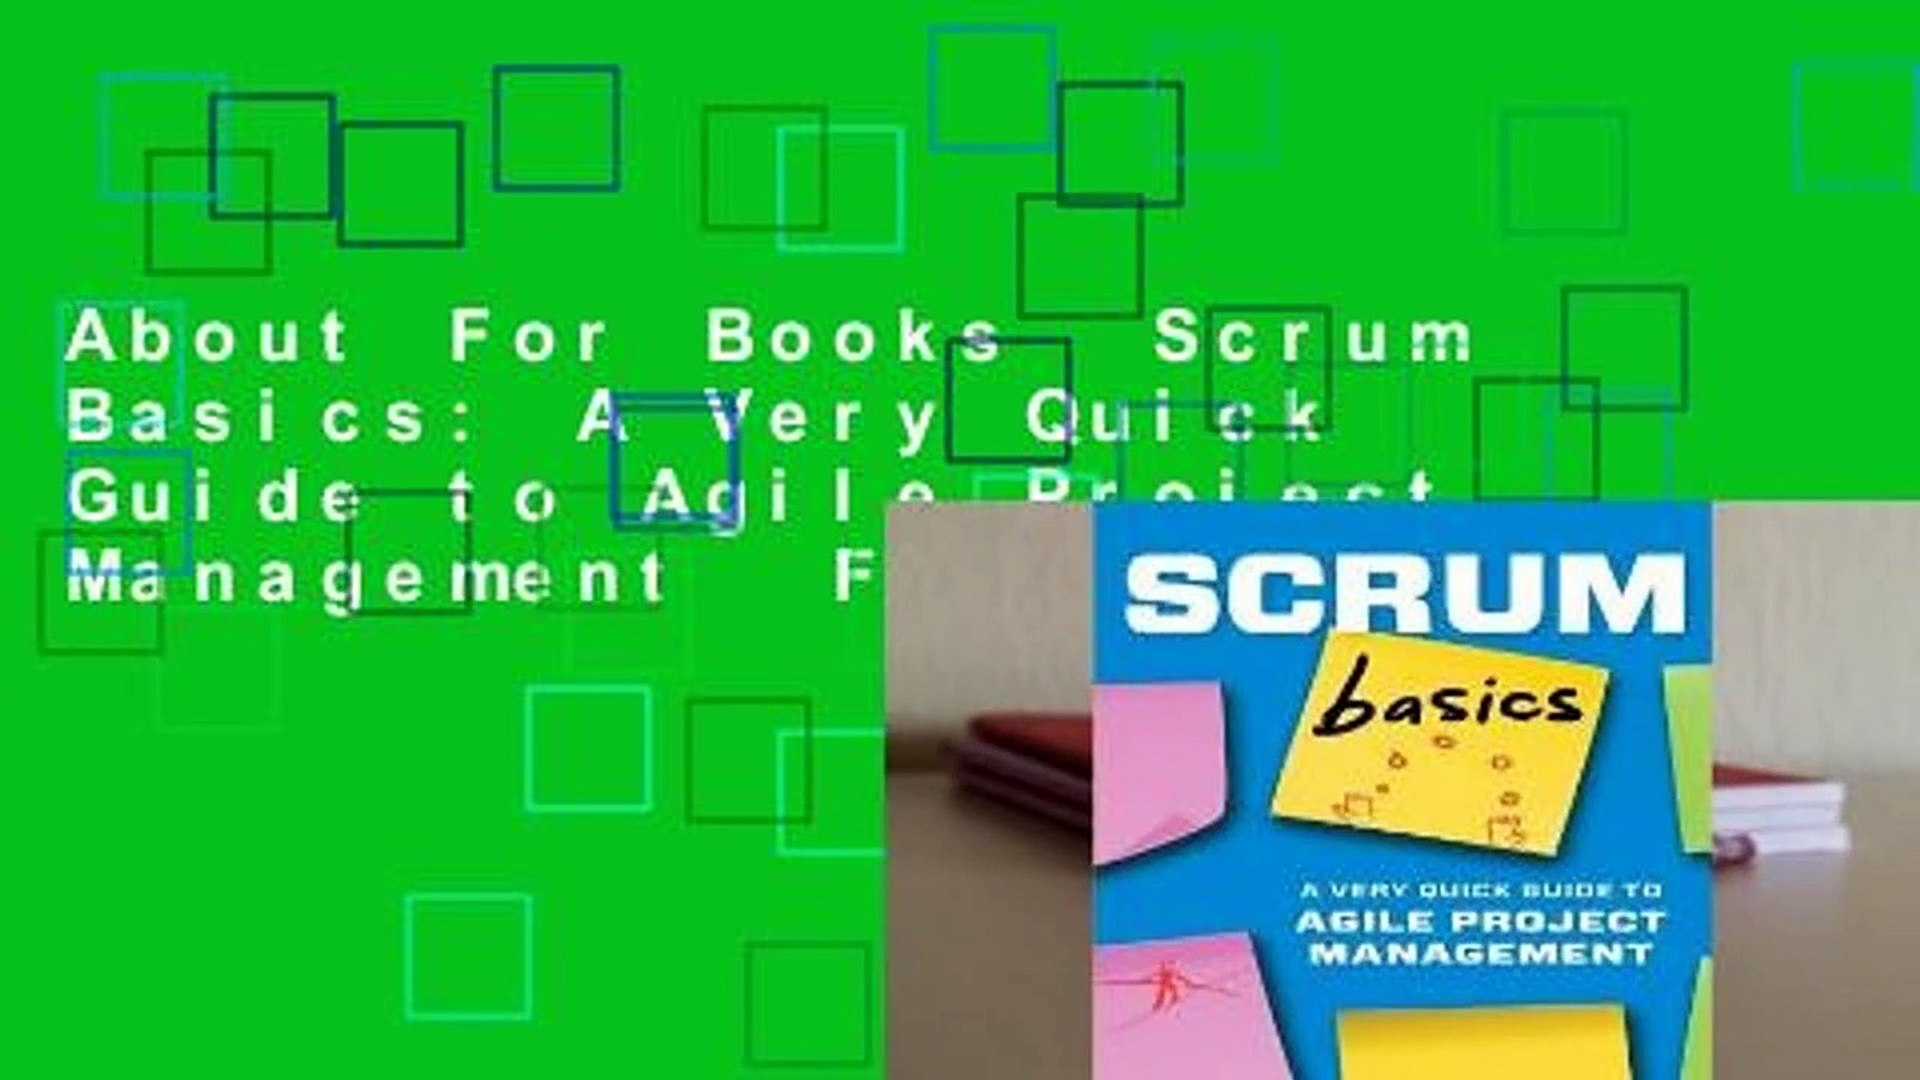 Agile Basics about for books scrum basics: a very quick guide to agile project  management for kindle